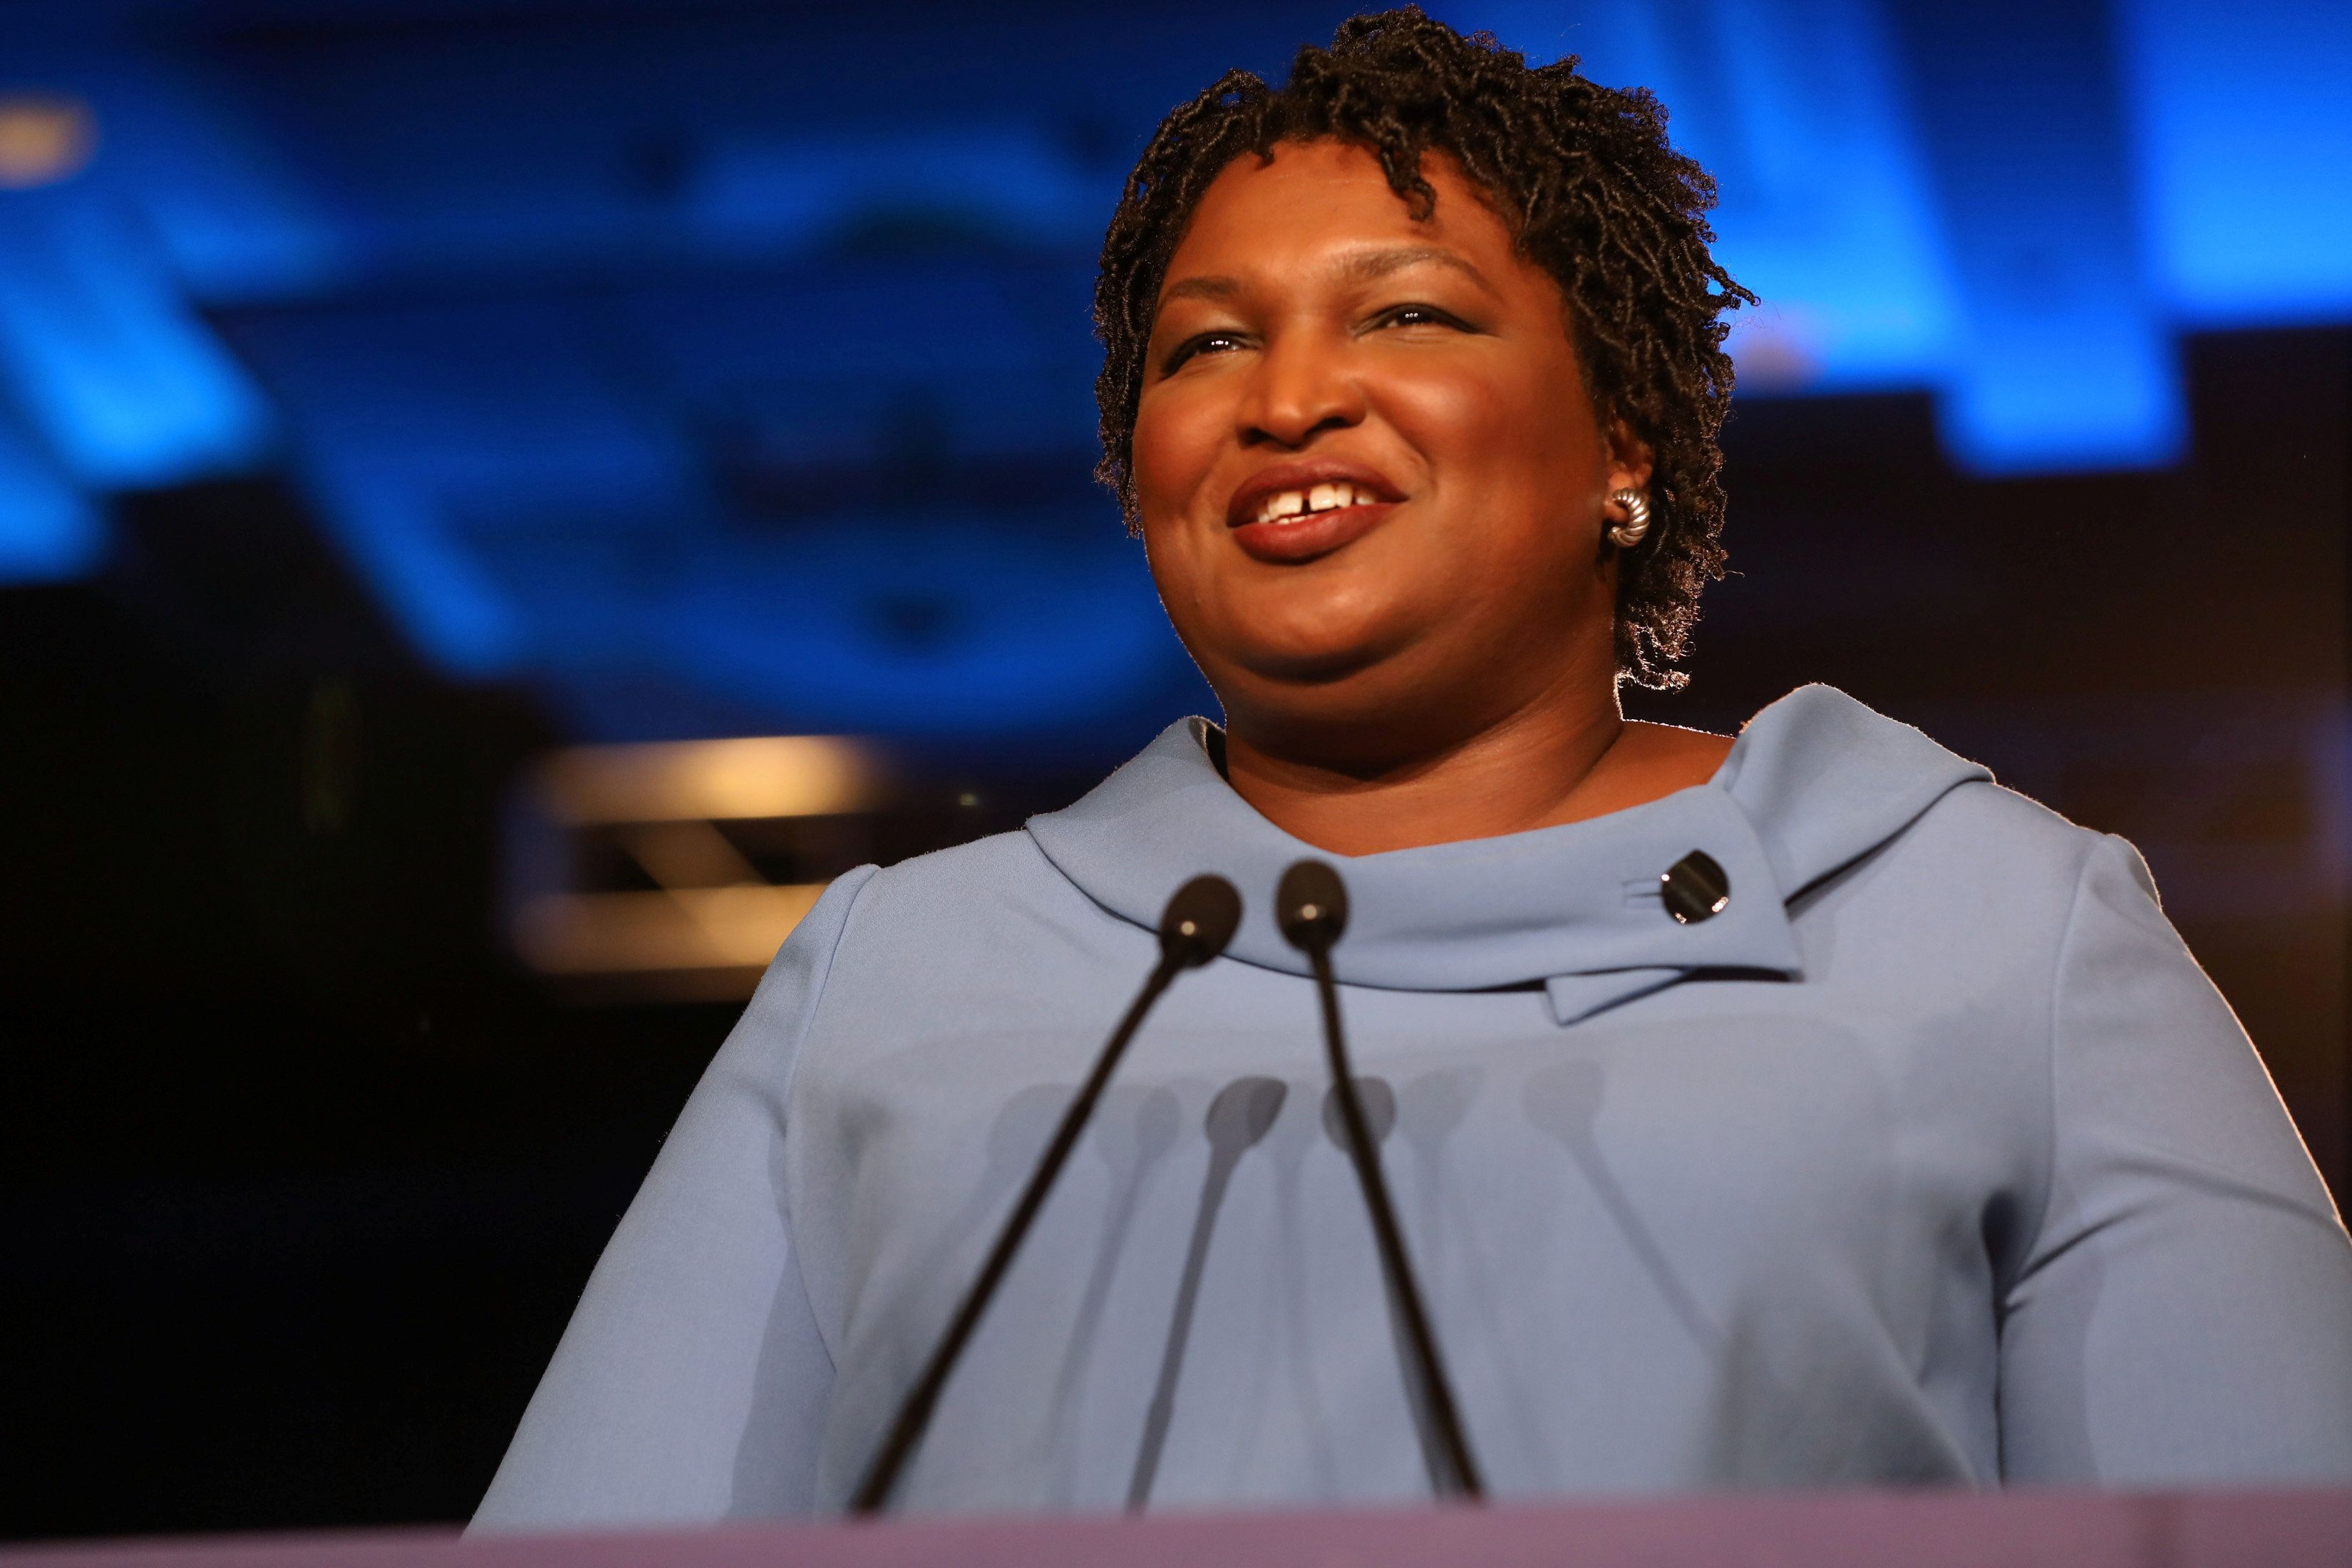 Stacey Abrams Says She'll Run Again After Losing Fierce Battle For Georgia